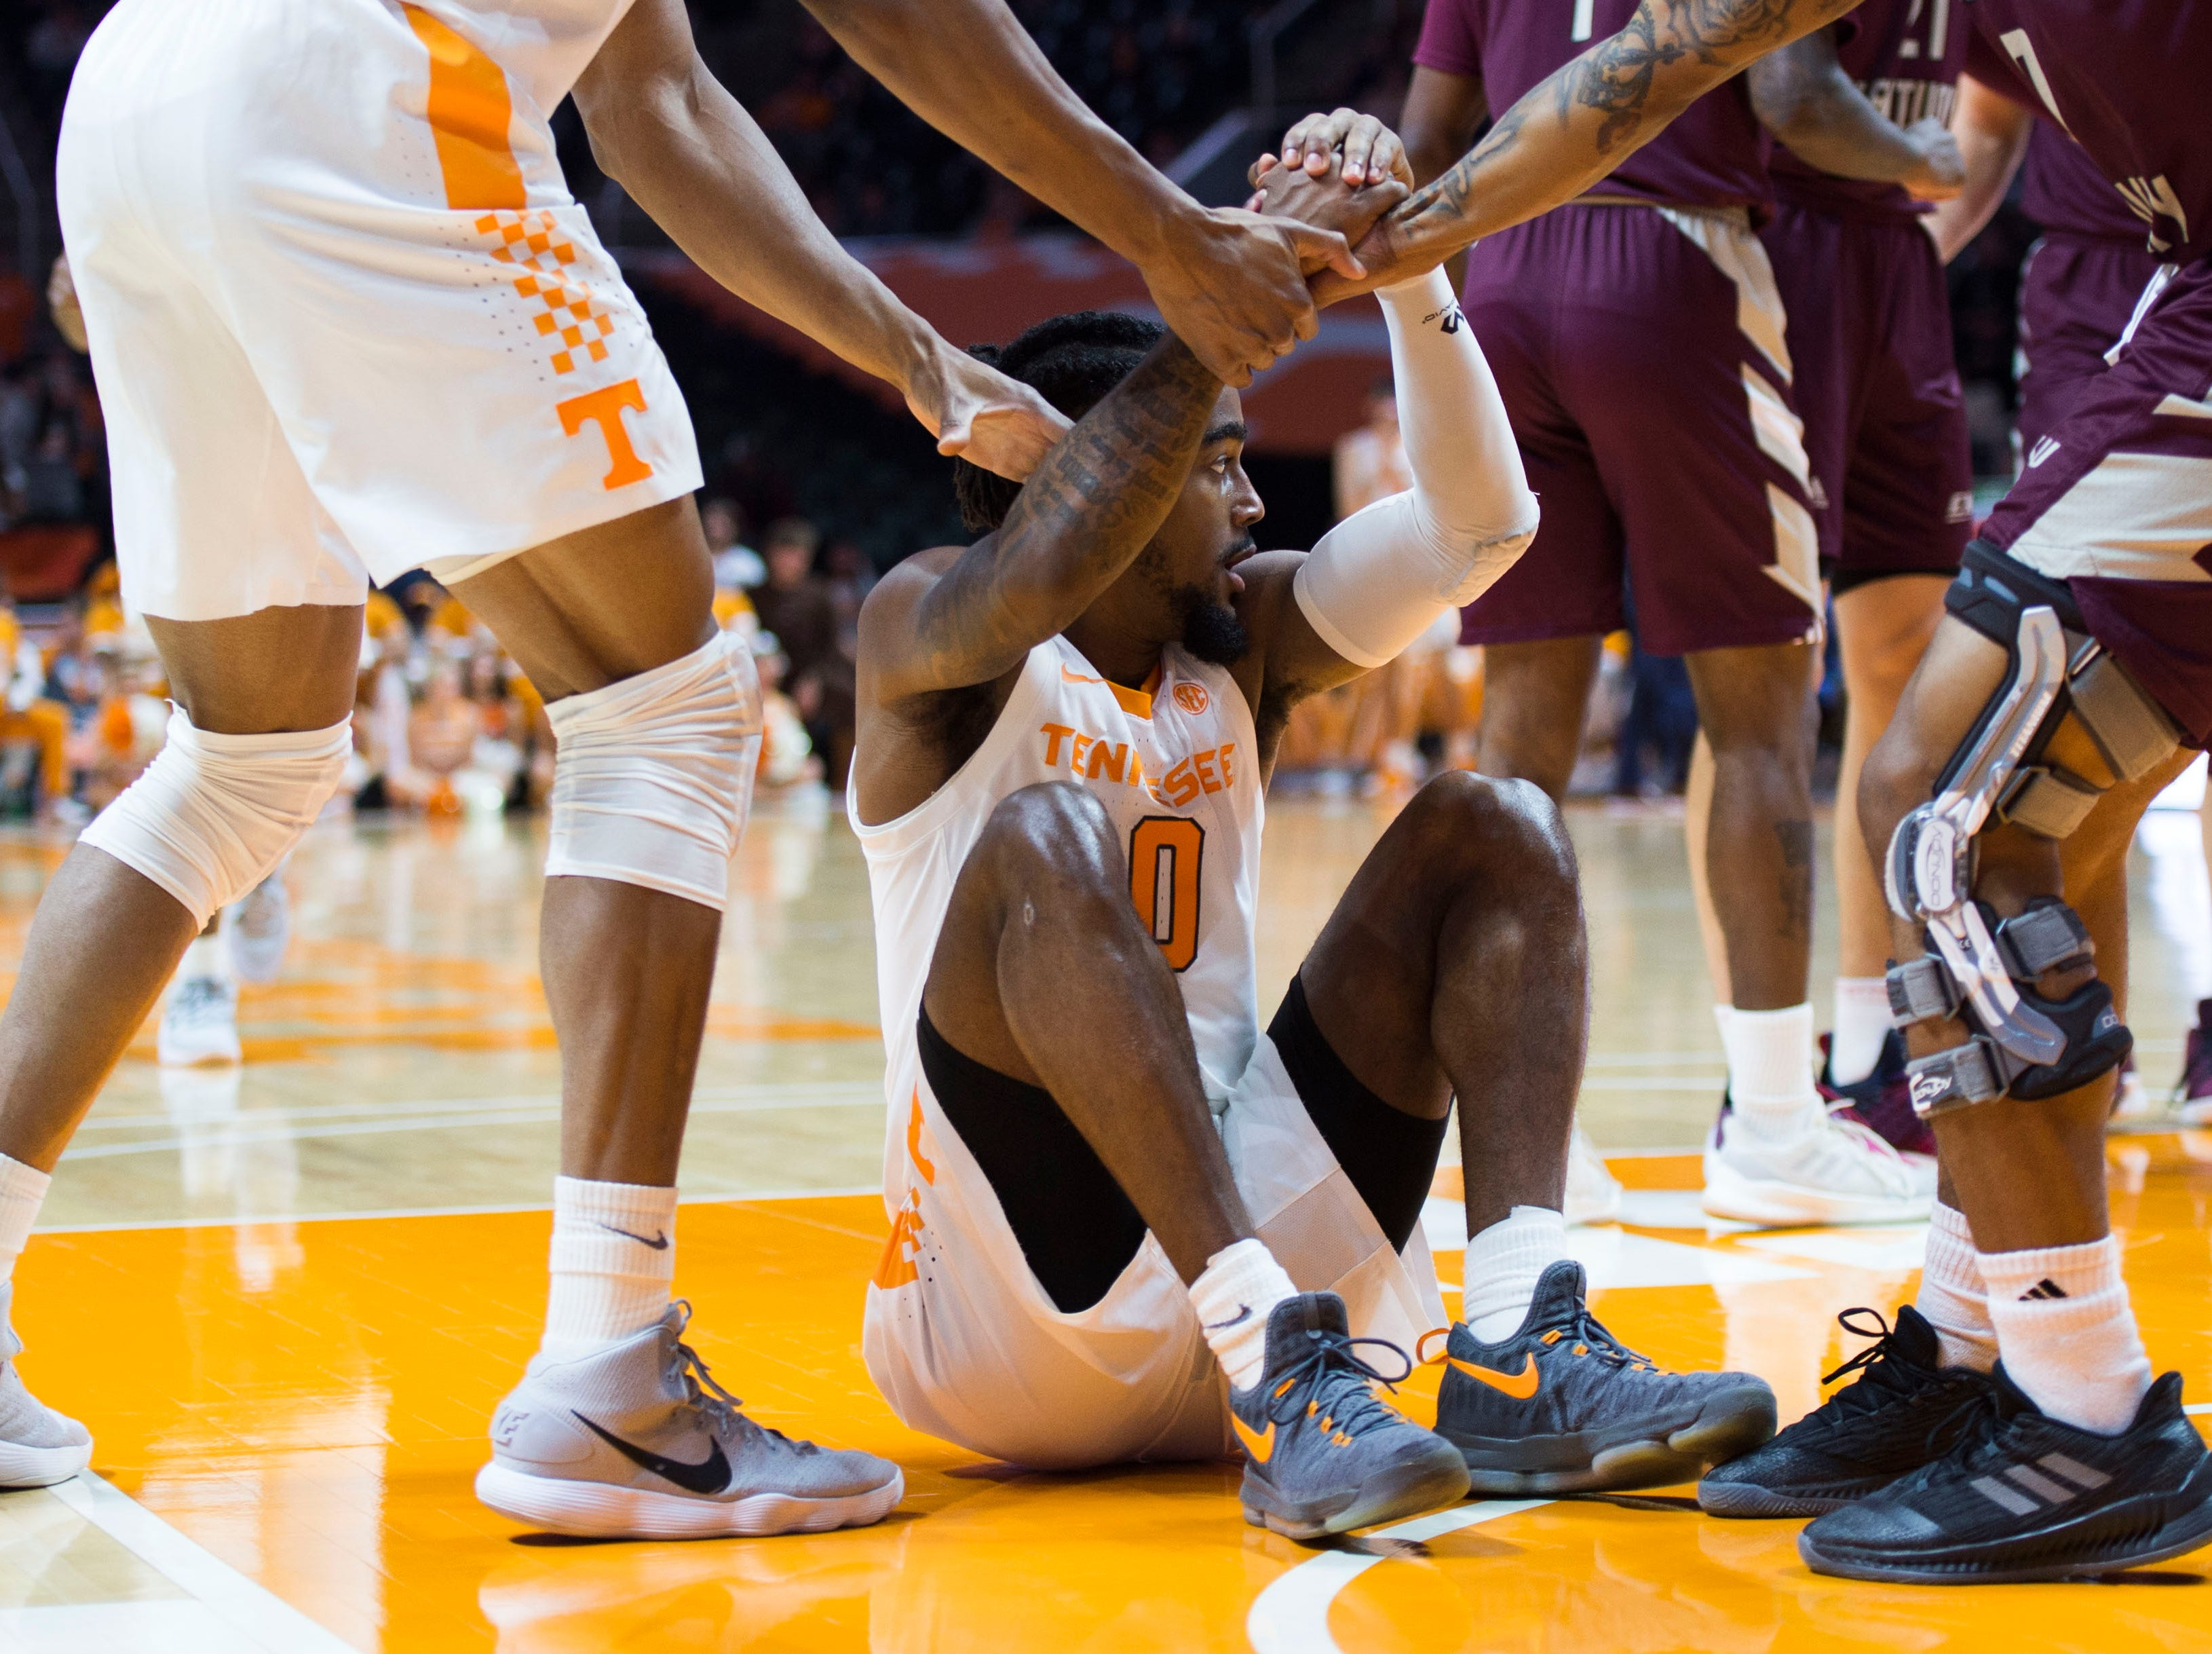 Tennessee's Jordan Bone (0) gets help up during the first half of a NCAA men's basketball game between Tennessee and Eastern Kentucky University at Thompson-Boling Arena Wednesday, Nov. 28, 2018.